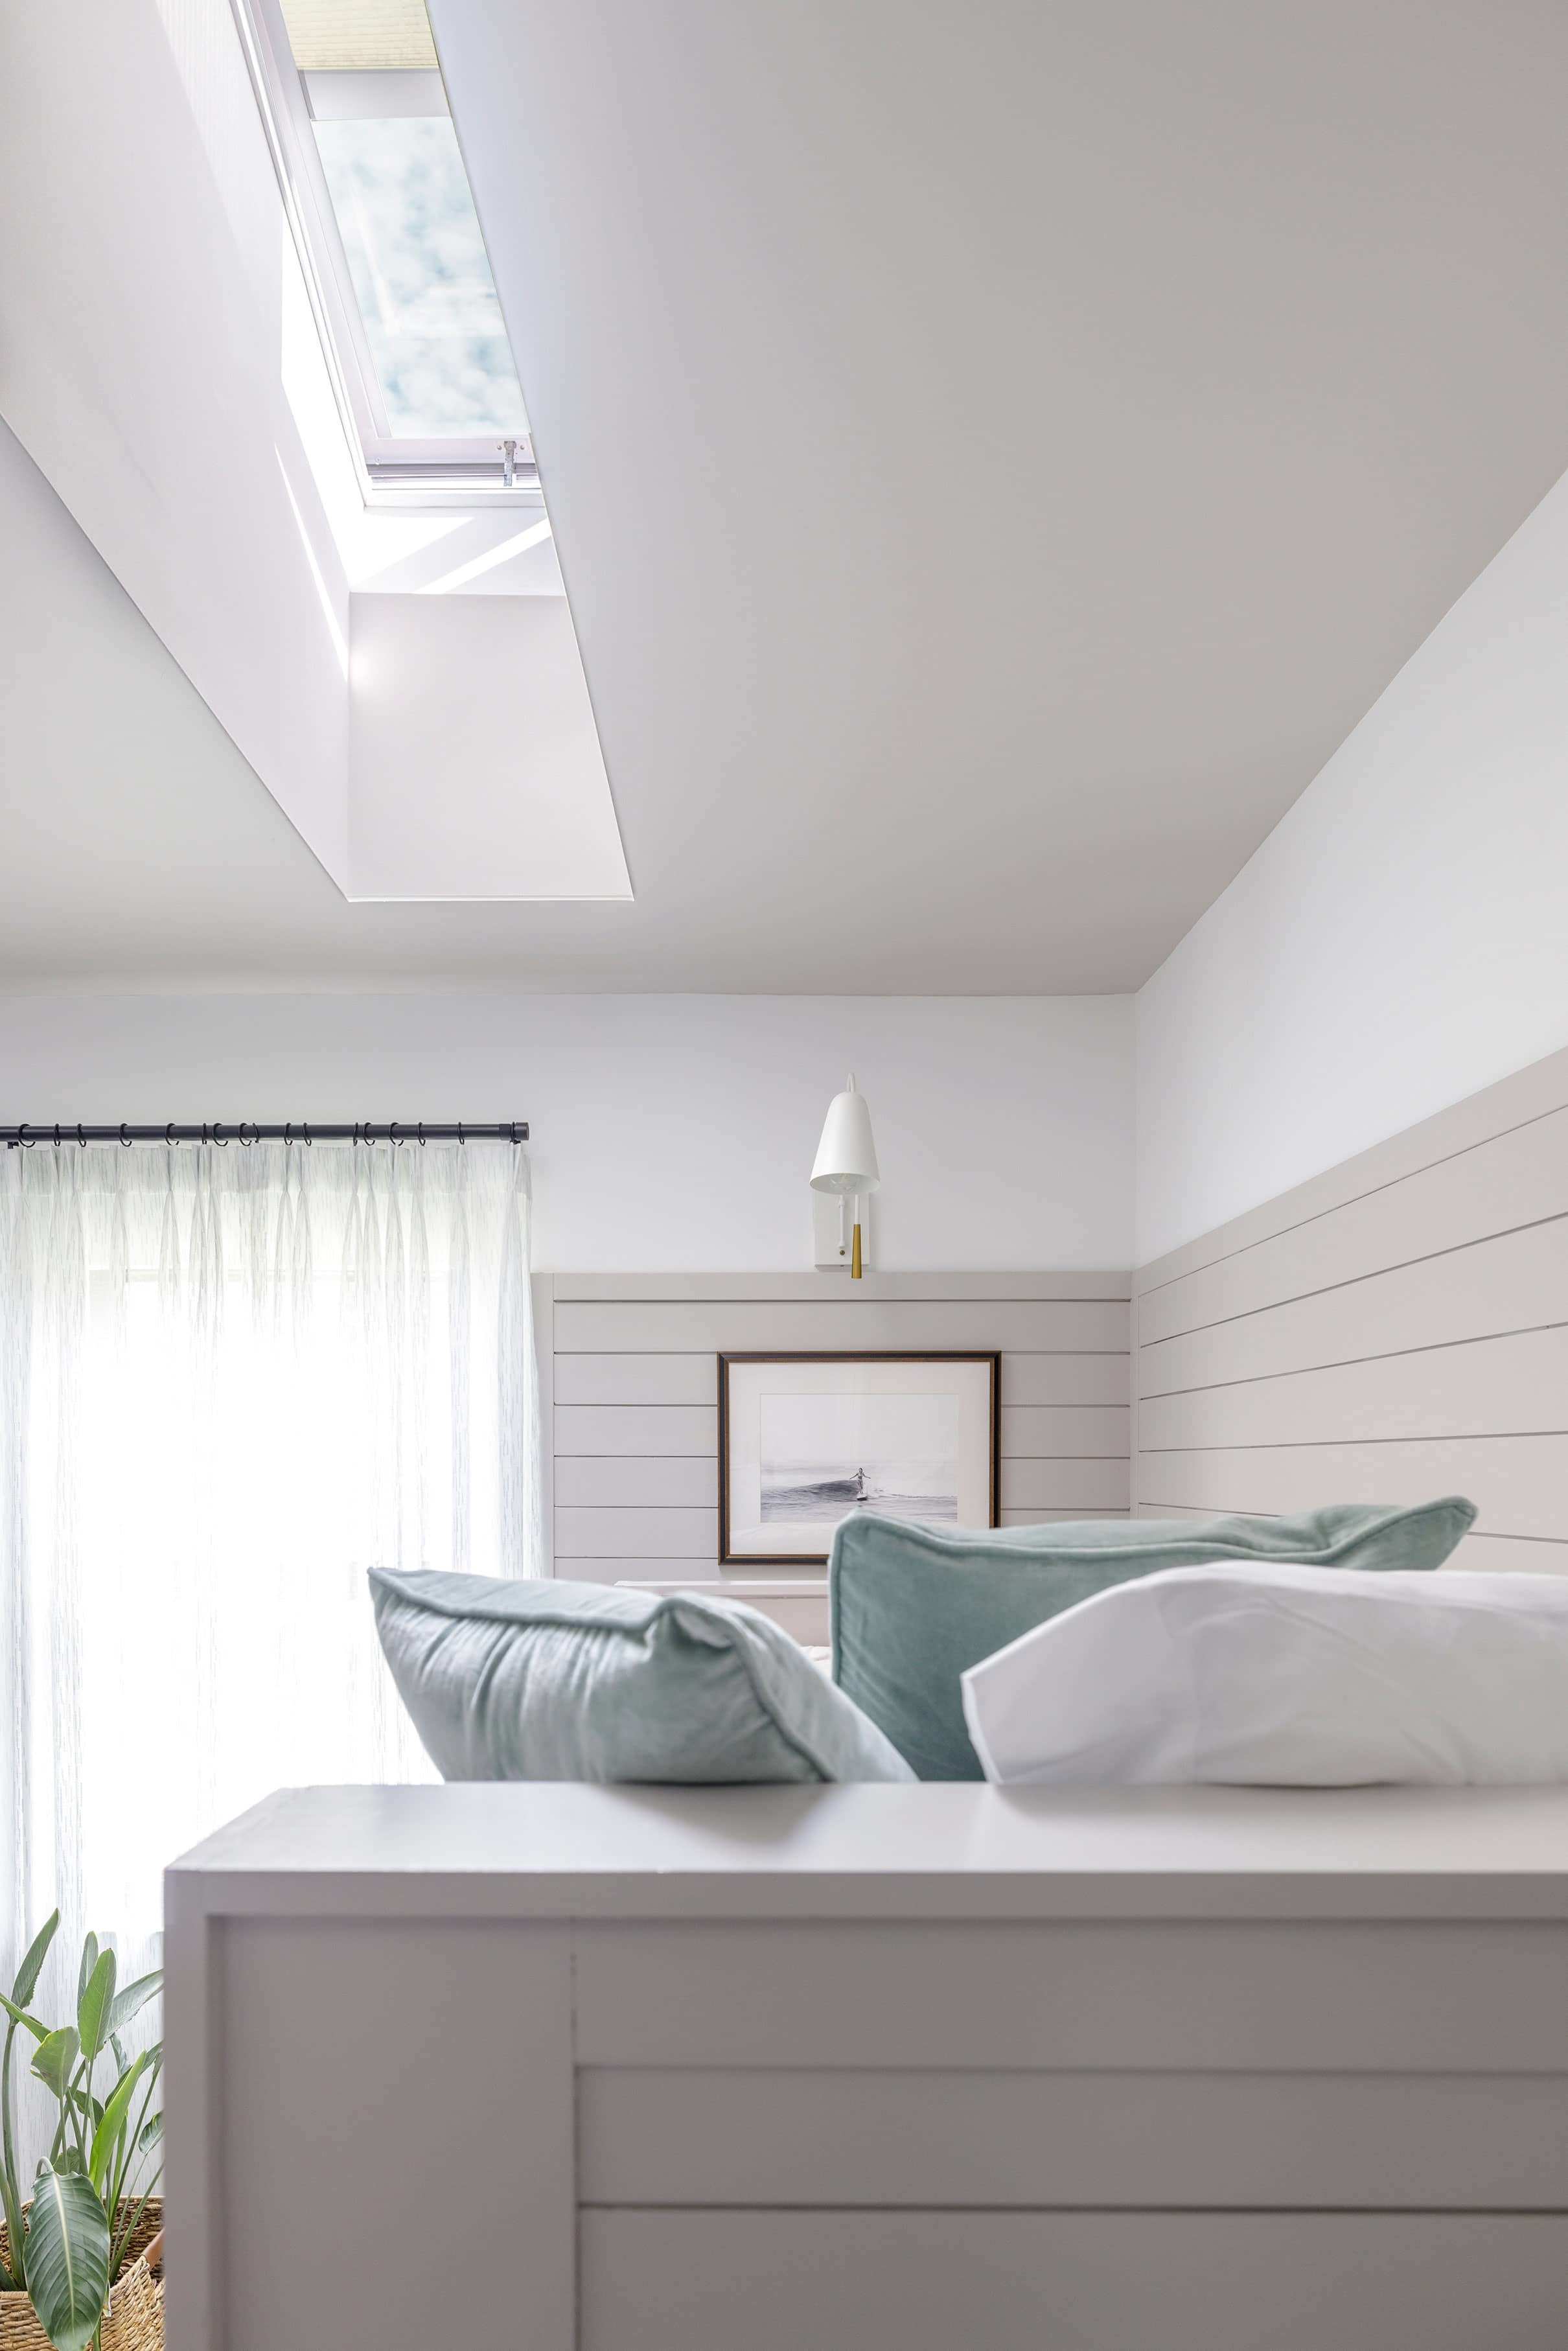 Bedroom bunk bed skylight grey white pillows